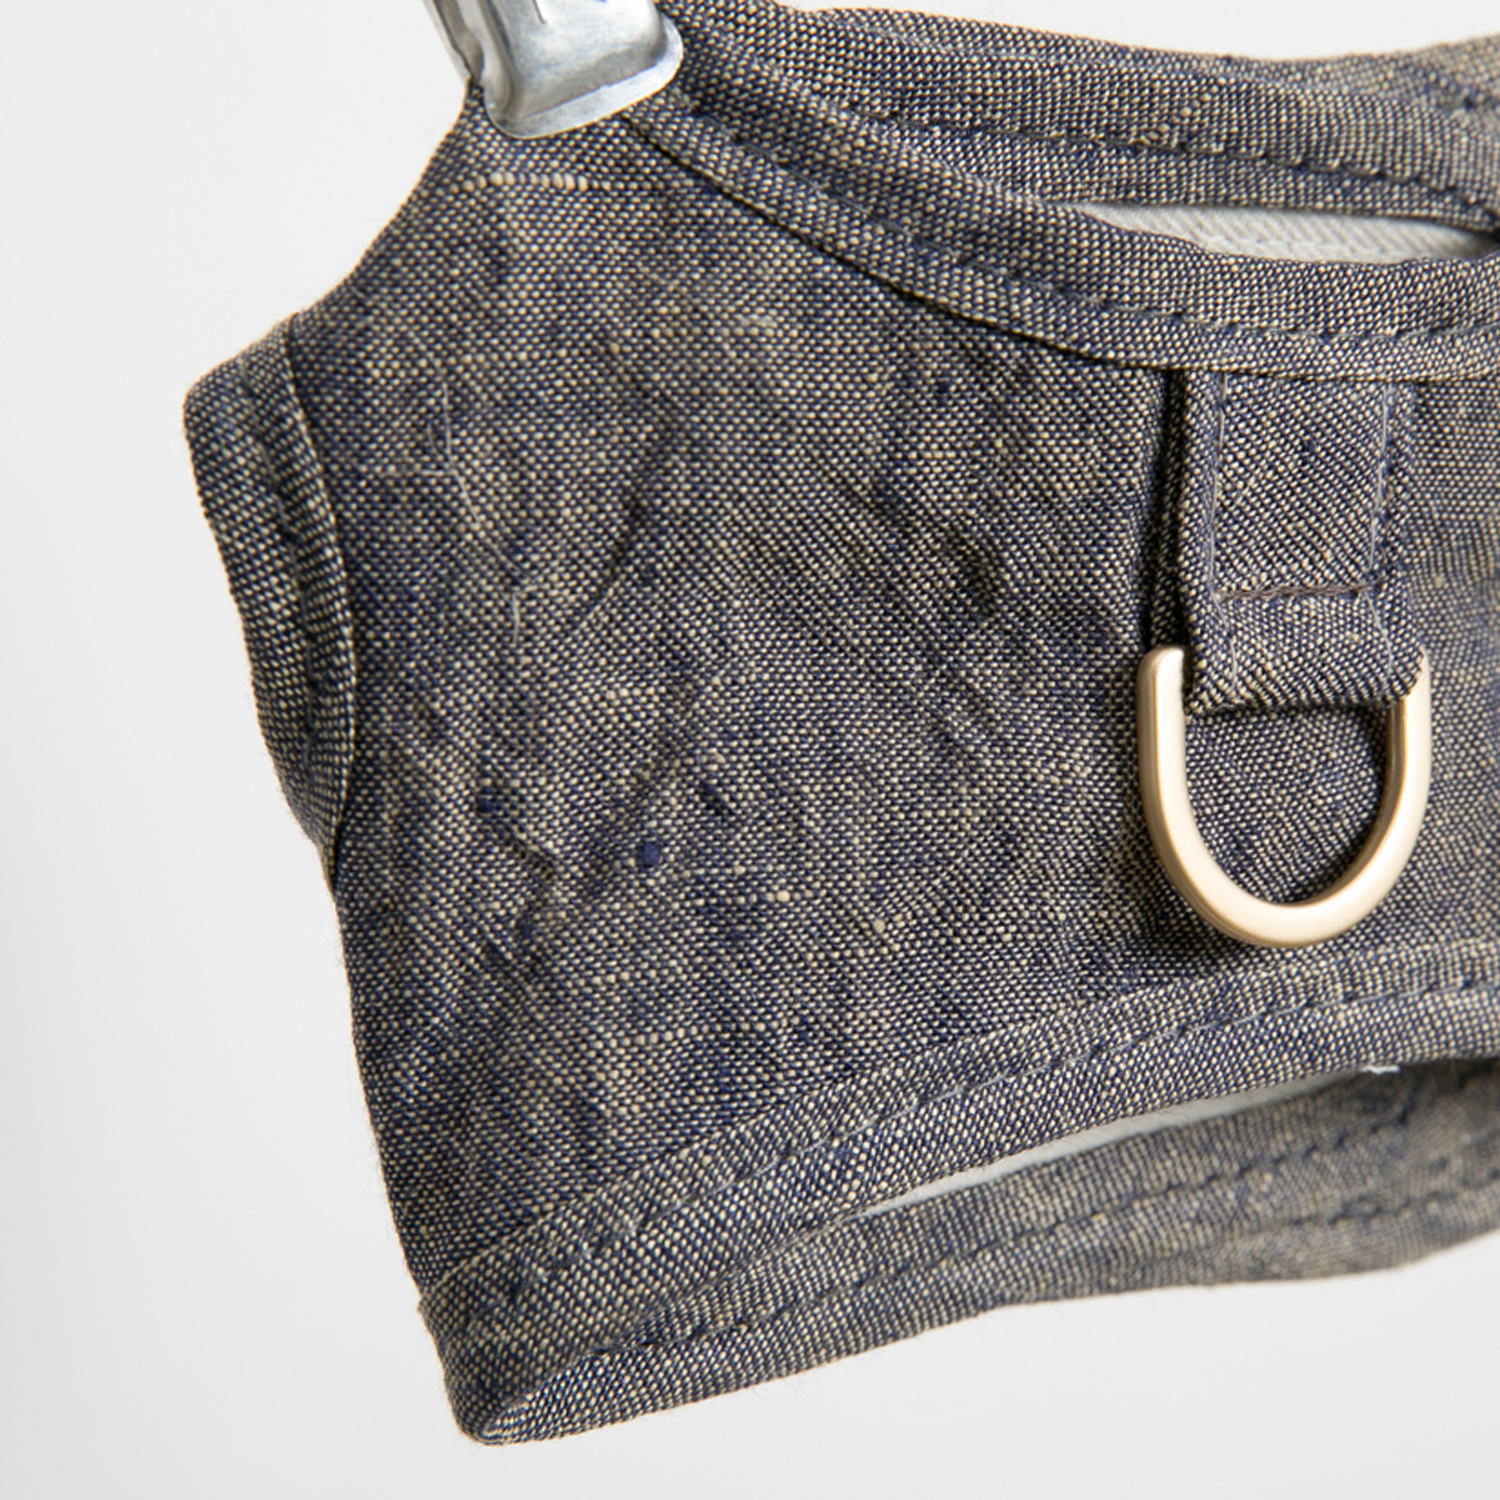 Irish Linen Dog Harness Set: Navy